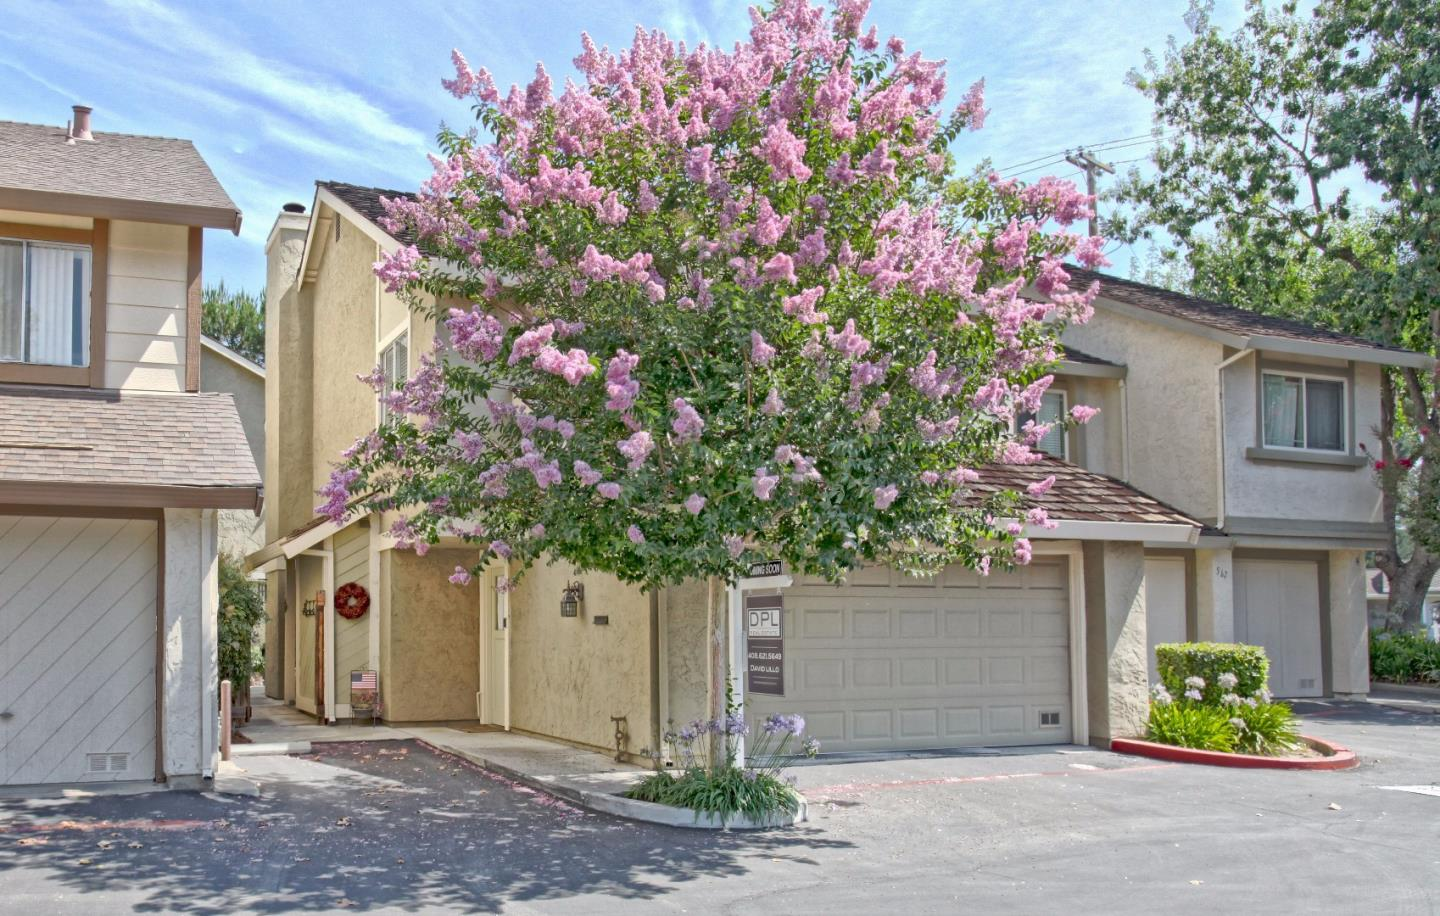 569 Union Ave, Campbell, CA 95008